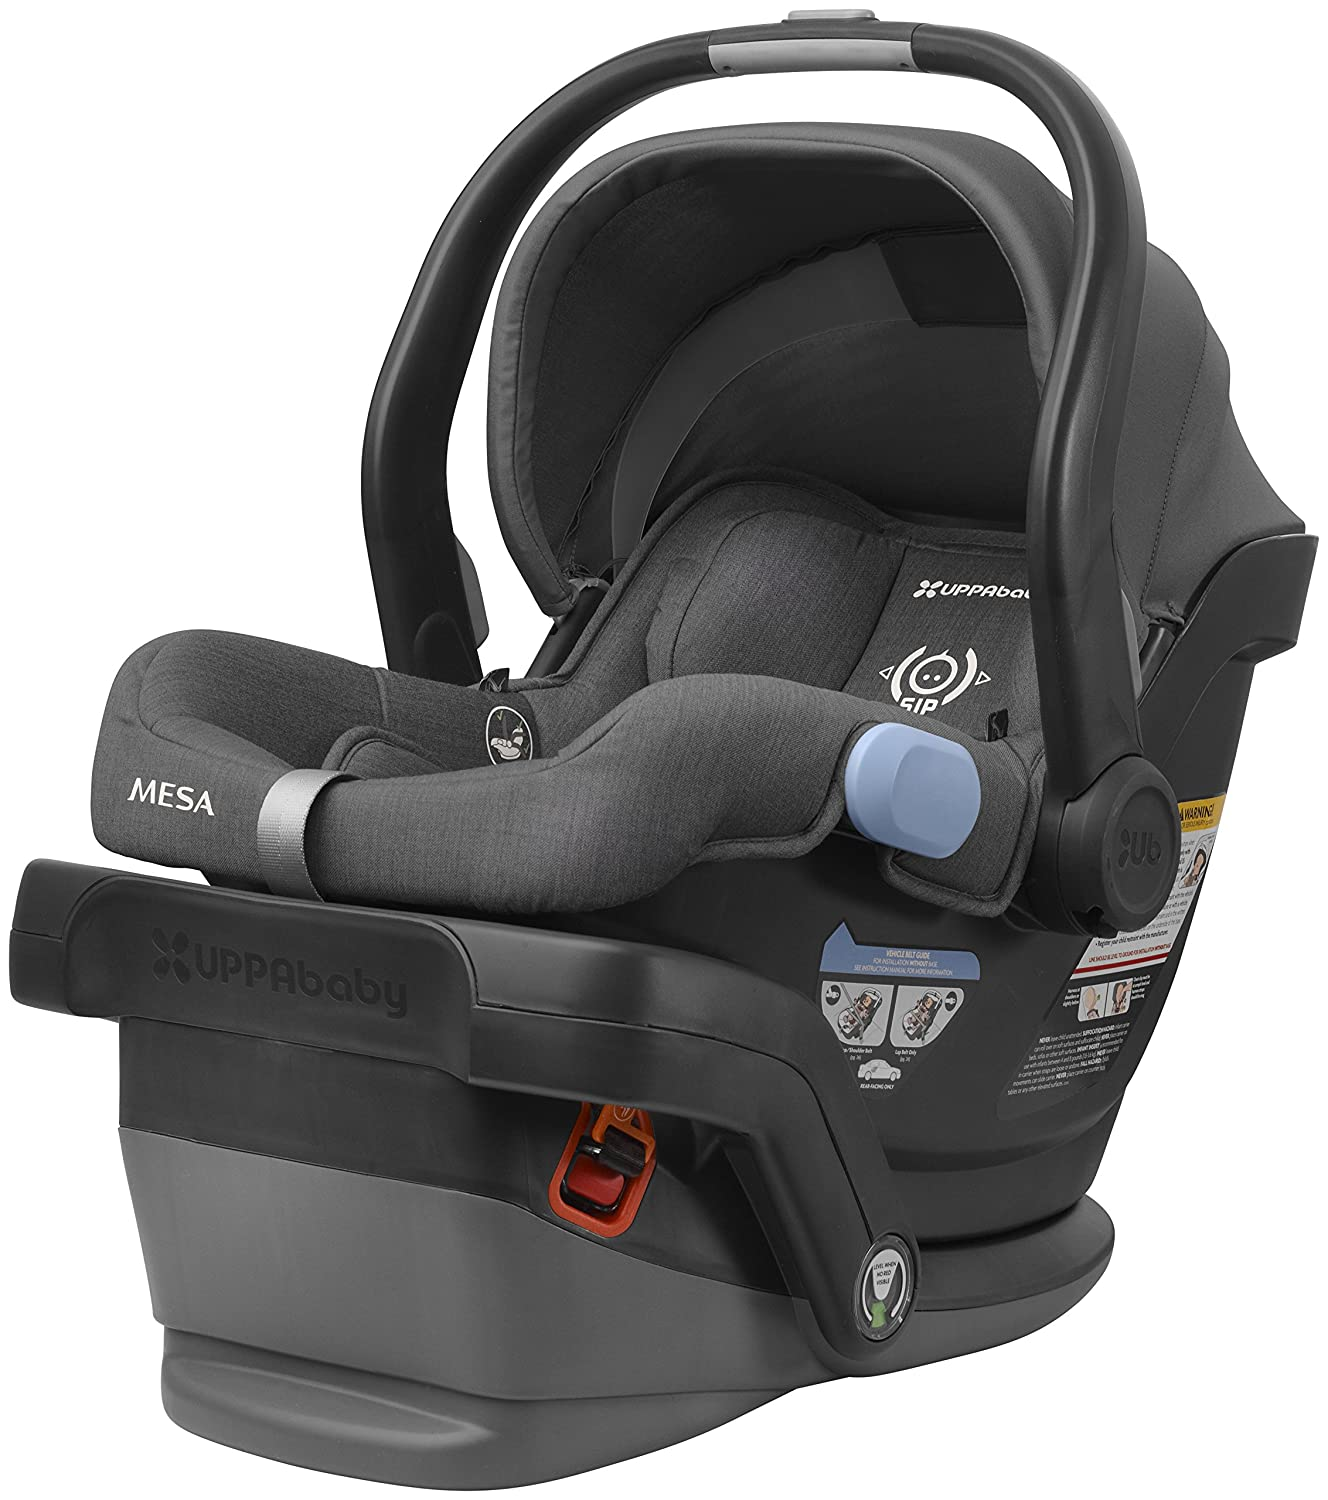 UPPAbaby MESA Infant Car Seat, Charcoal Melange Wool Version, Jordan